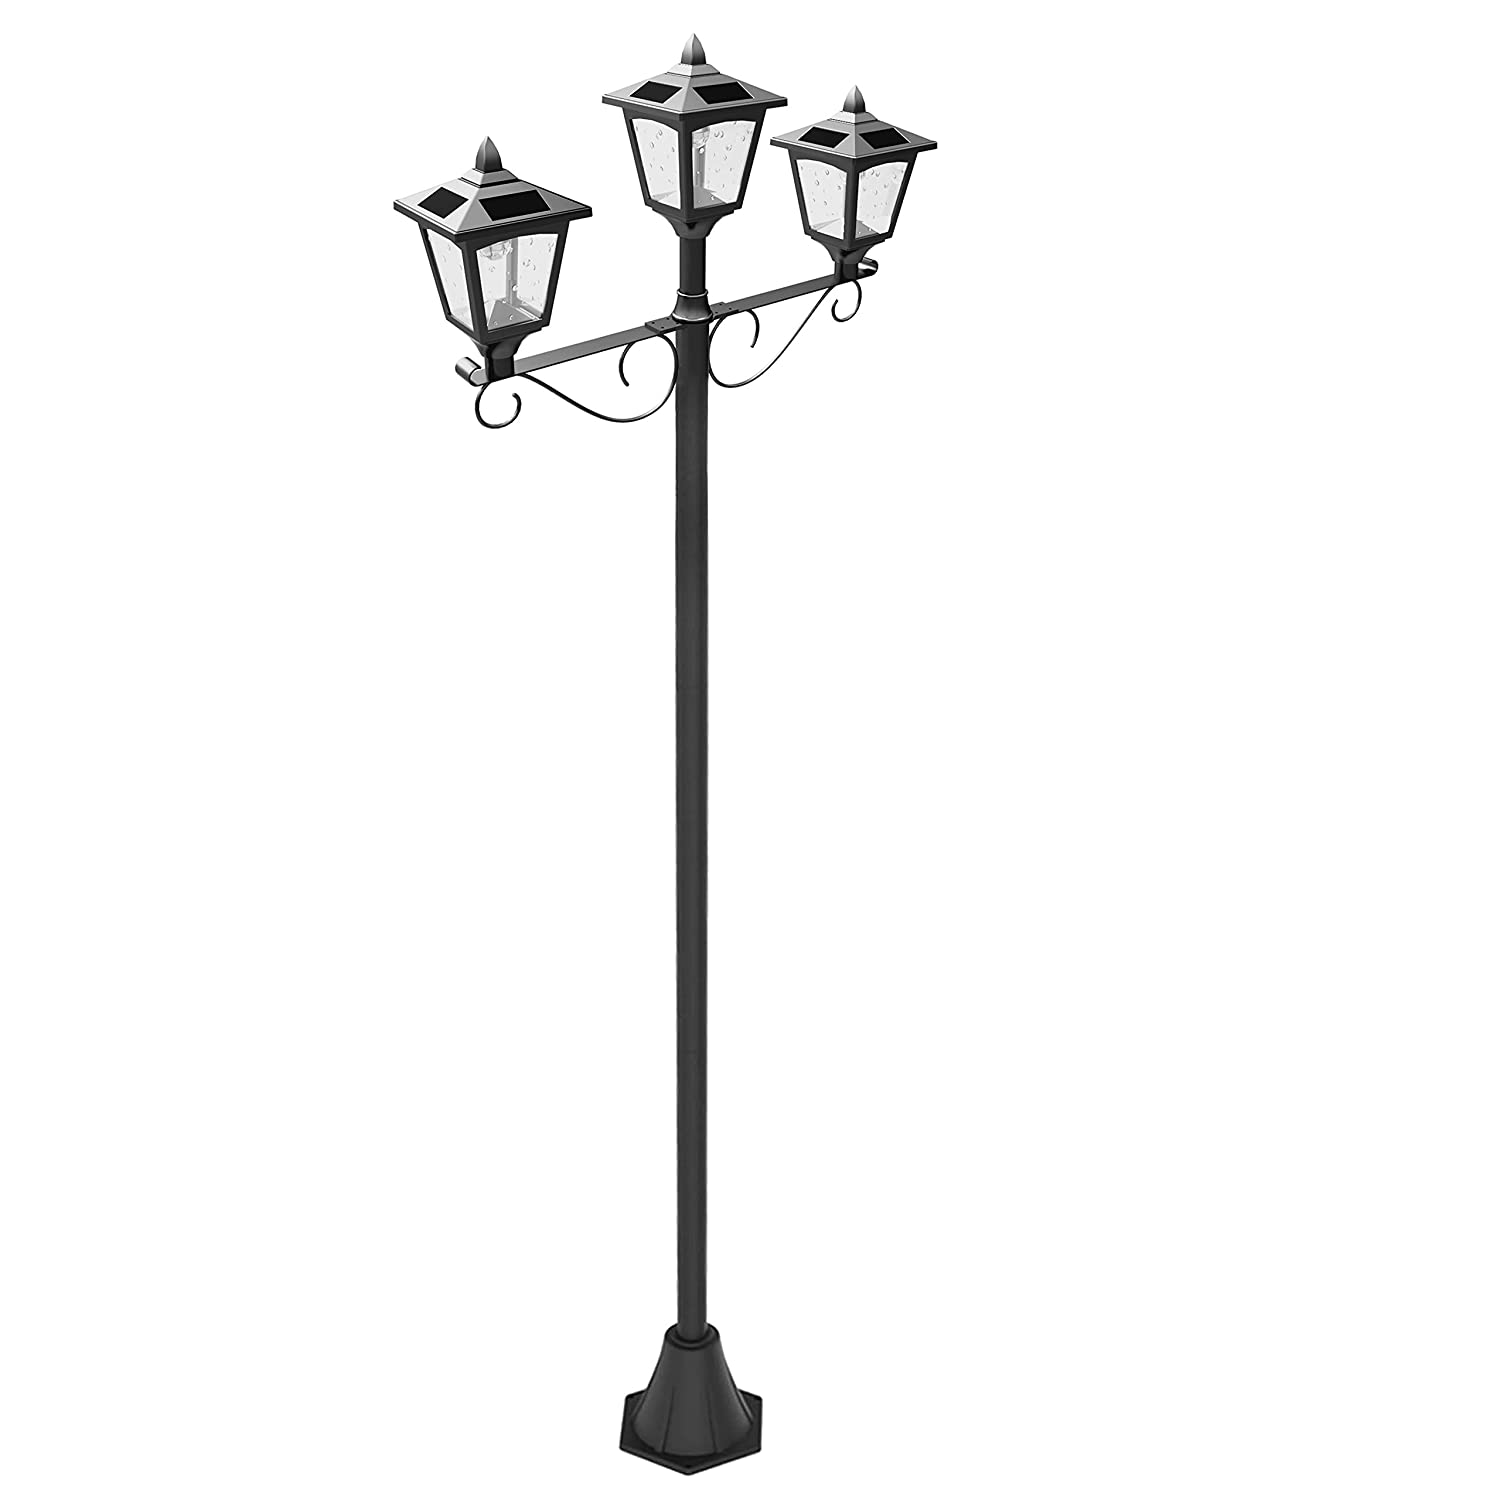 Top 10 Best Solar Lamp Post Light Reviews in 2021 9